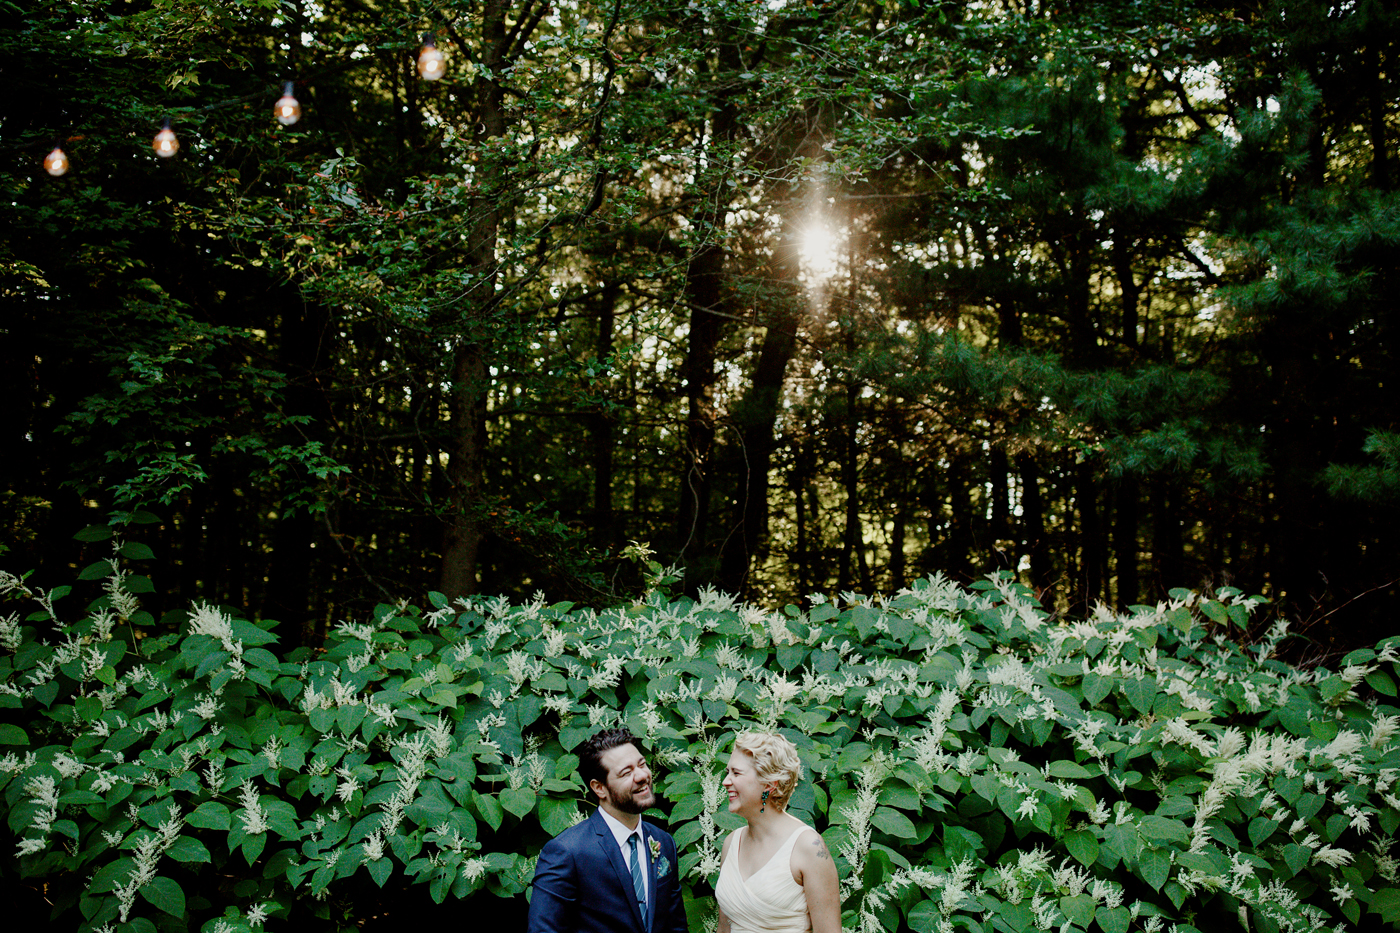 amandavanvels_backyardwedding_0391.jpg